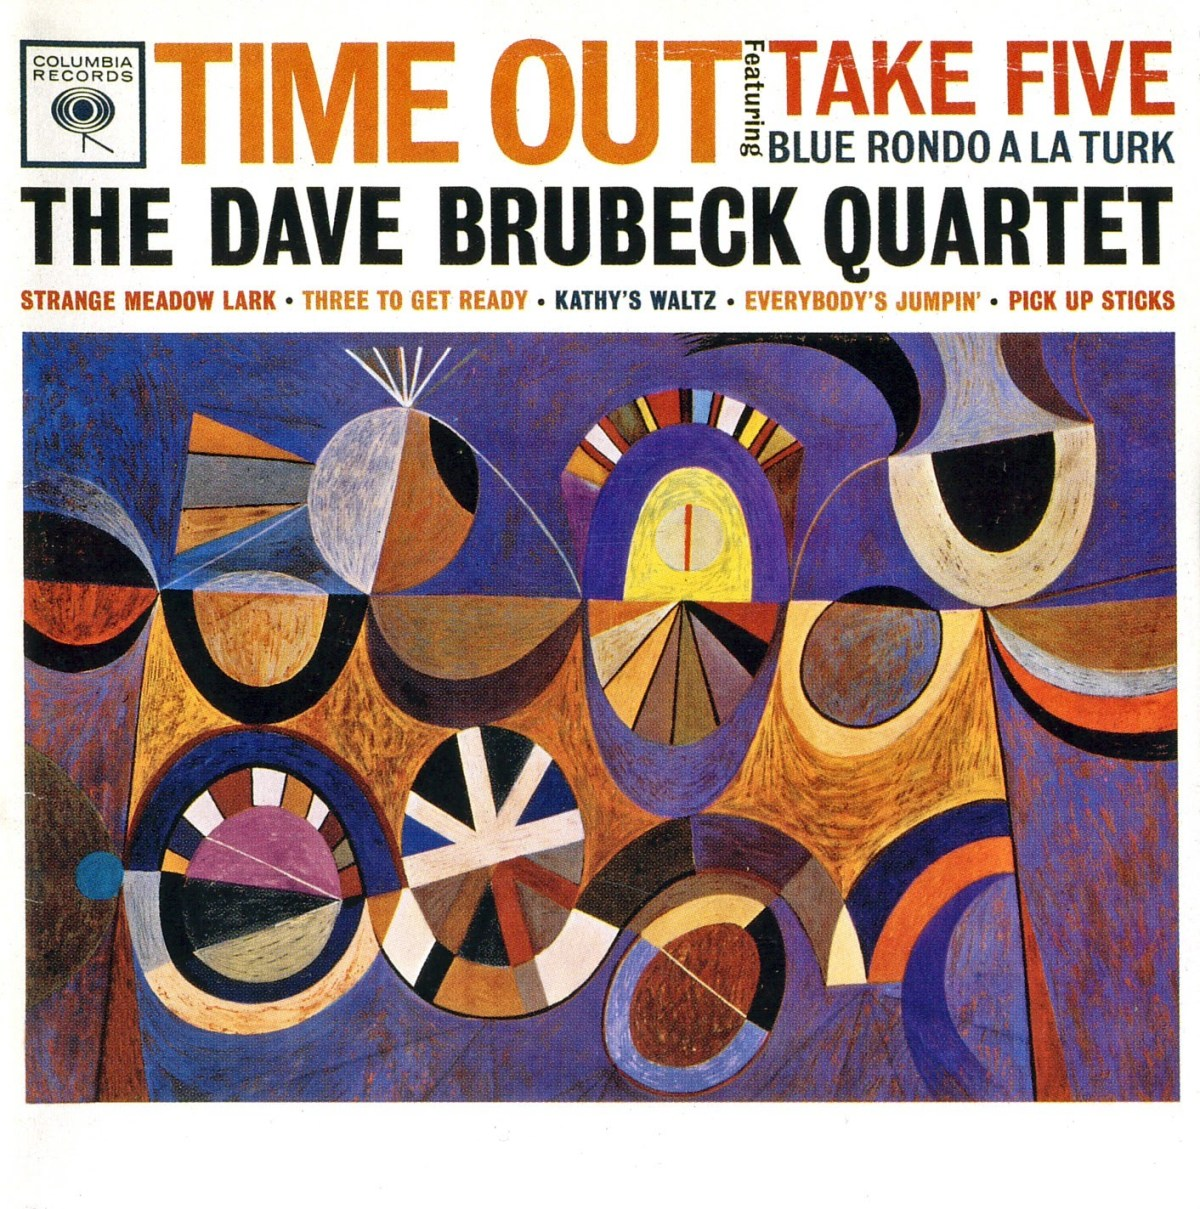 Album Art from Time Out by the Dave Brubeck Quartet featuring abstract art